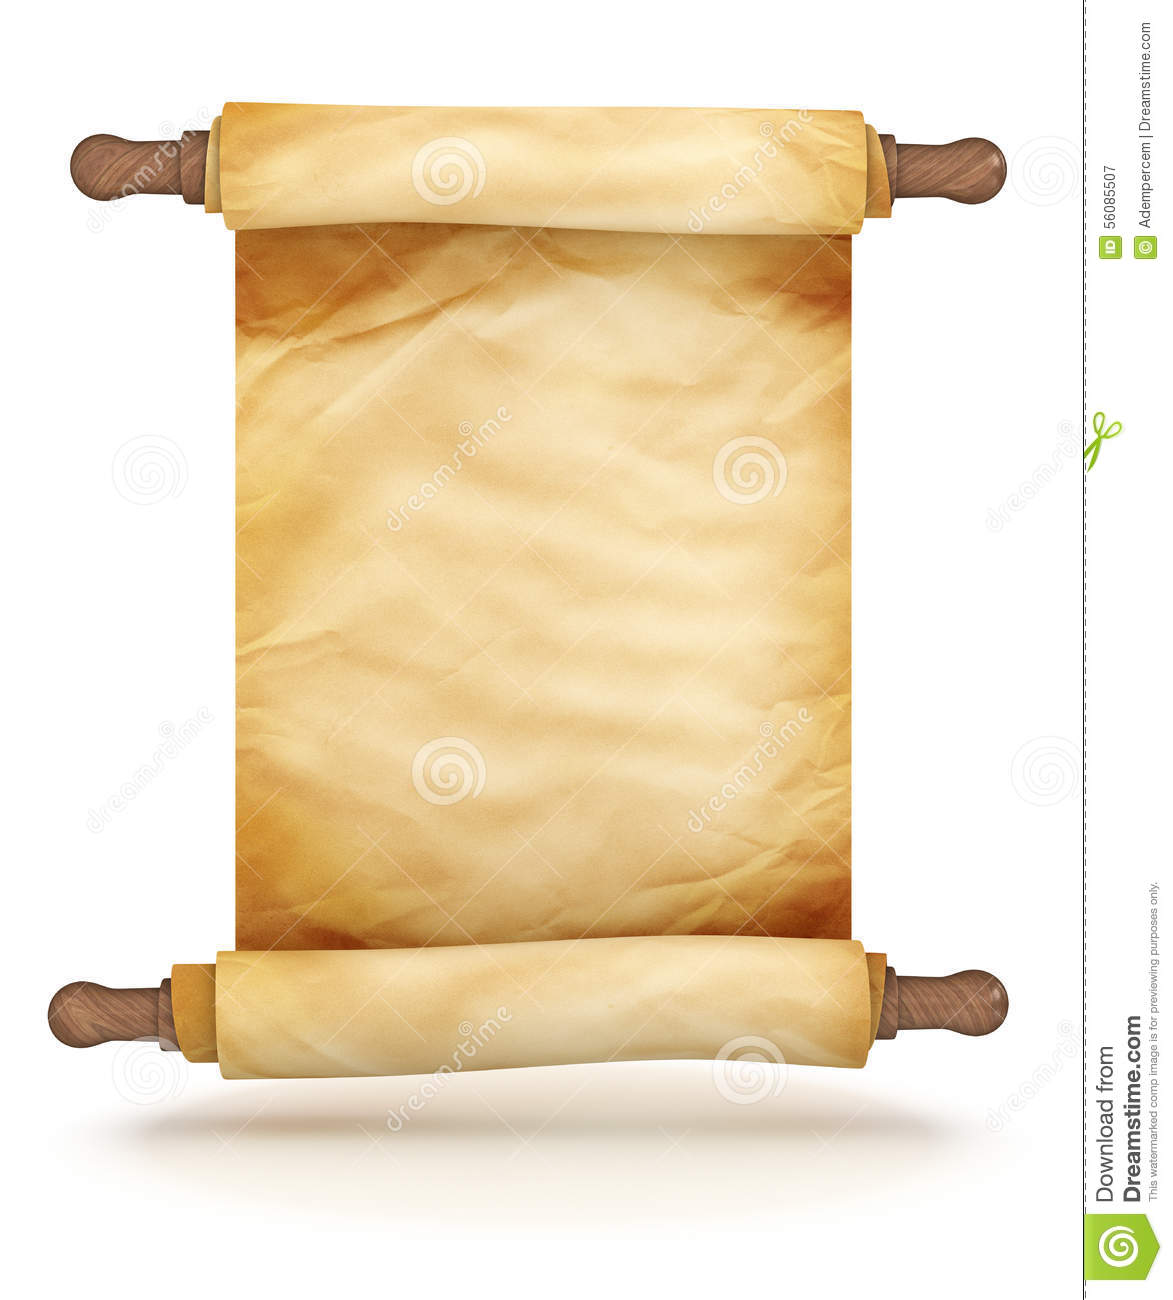 Old Fashioned Document Clipart